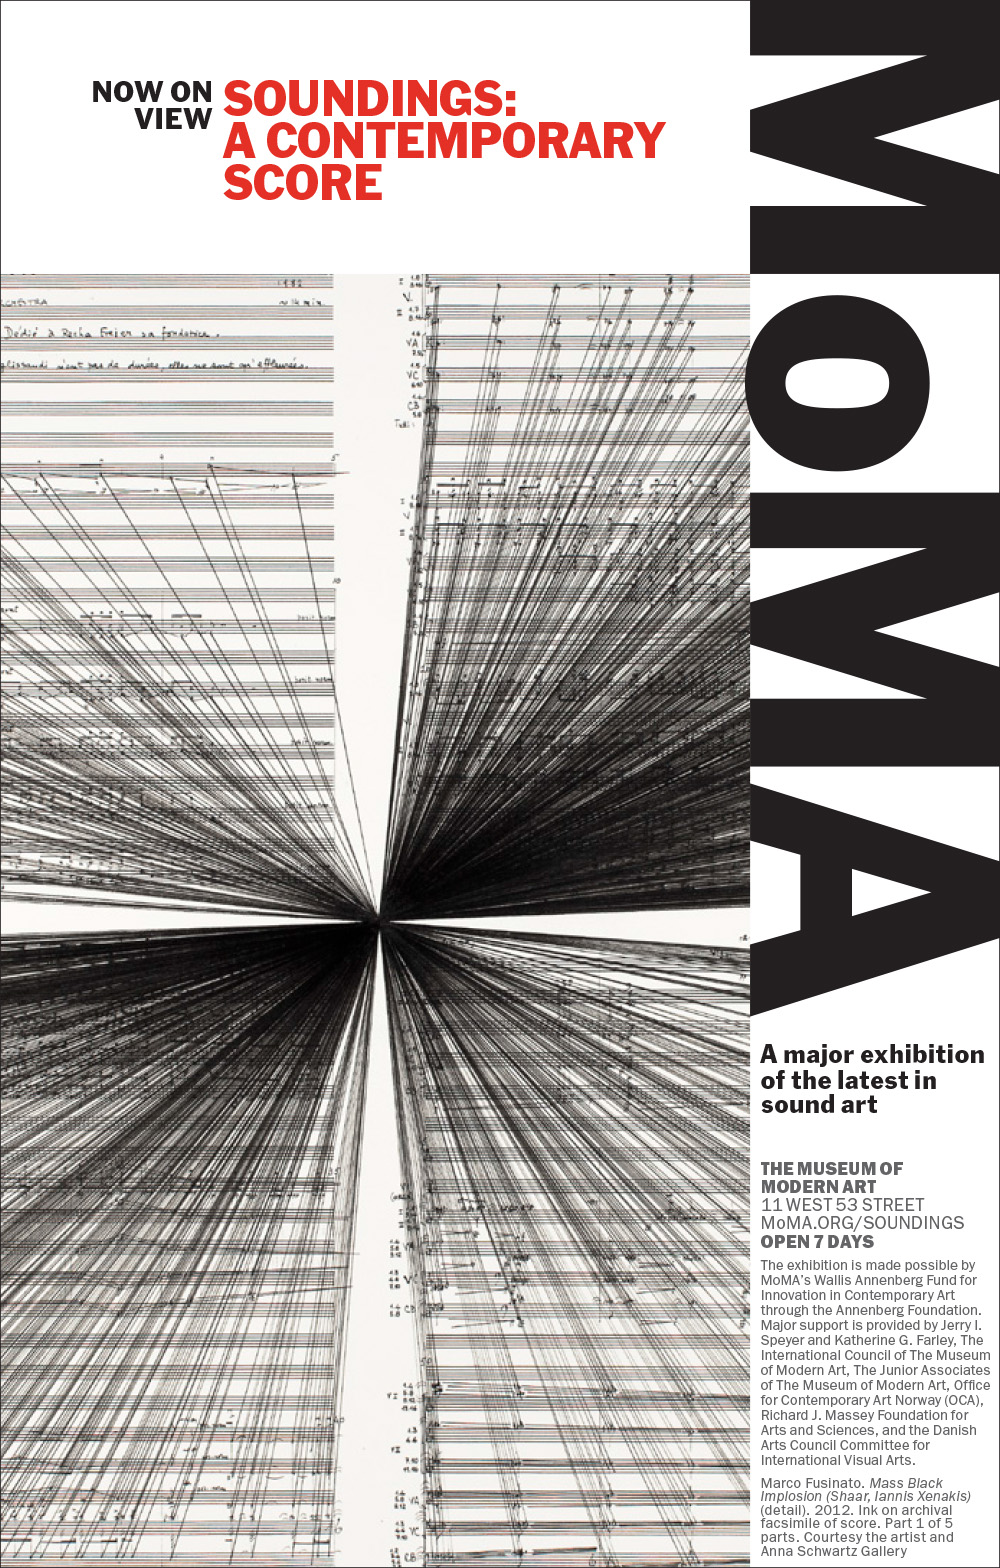 Soundings: A Contemporary Score exhibition @ MOMA, NYC, with Marco Fusinato artwork (and on the main poster!)